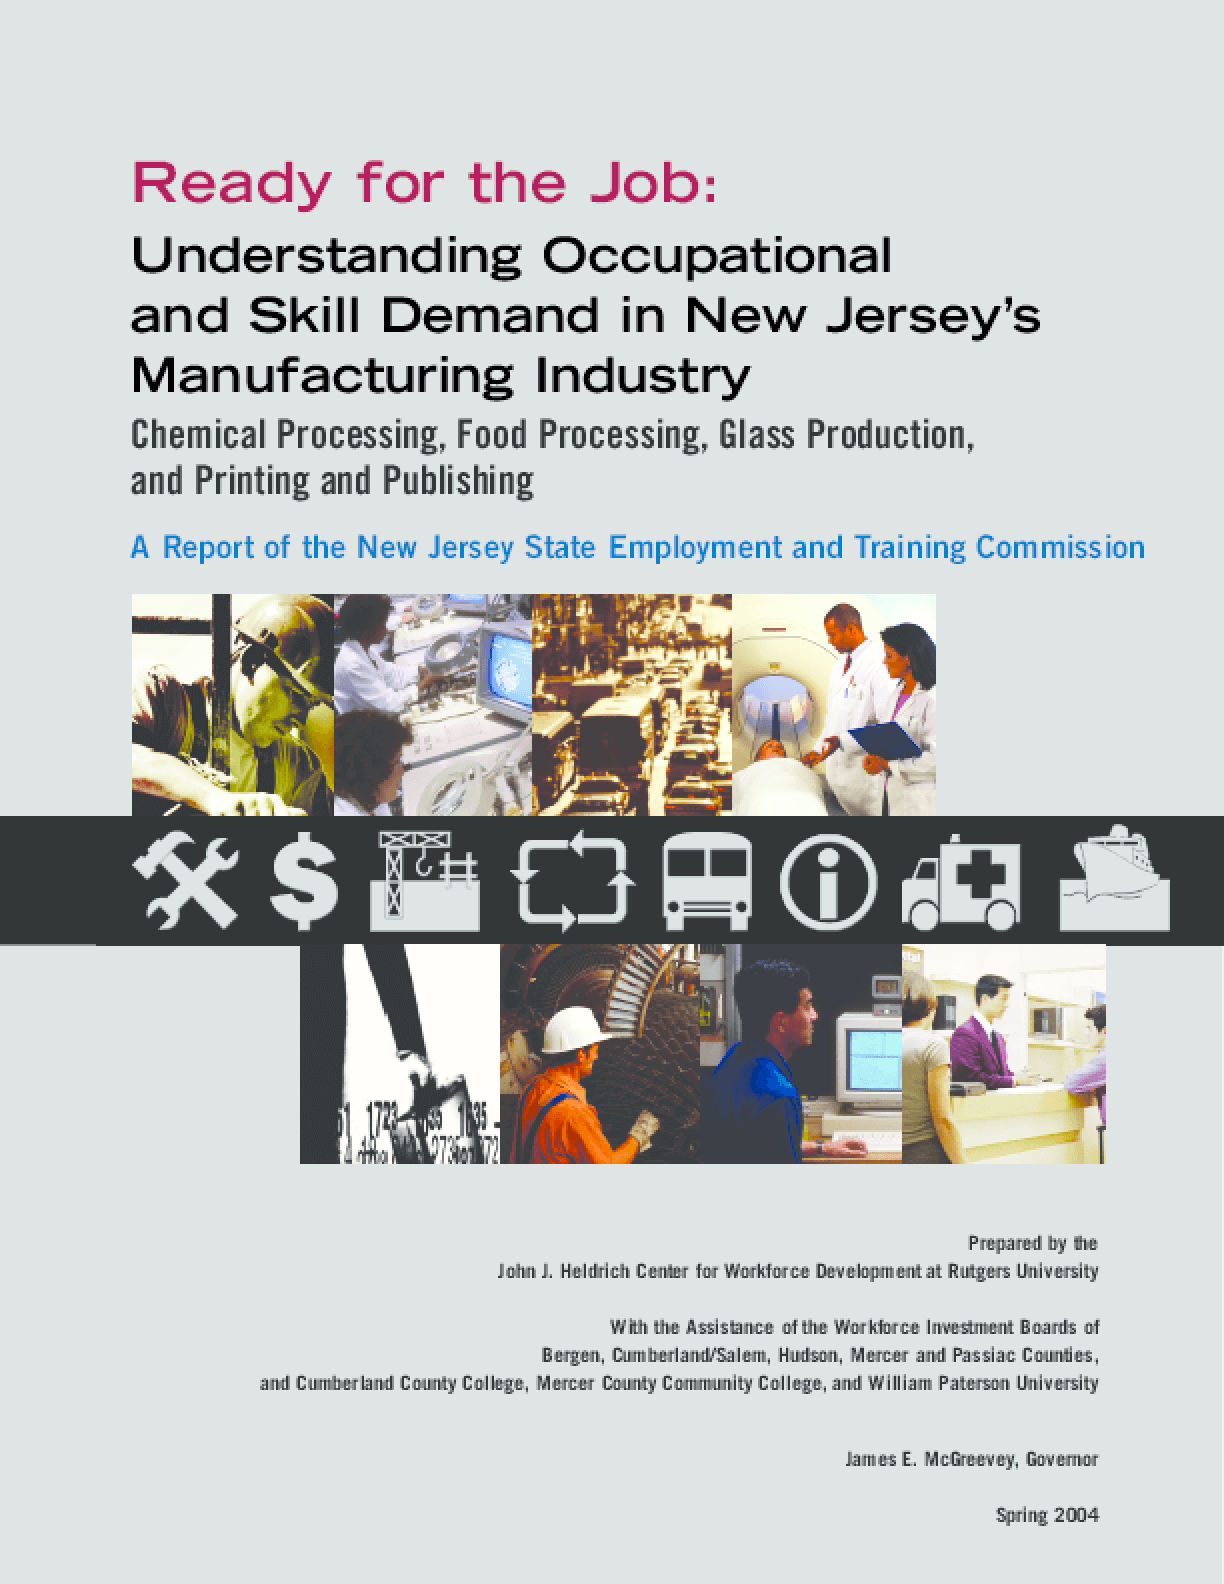 Understanding Occupational and Skill Demand in NJ's Manufacturing Industry